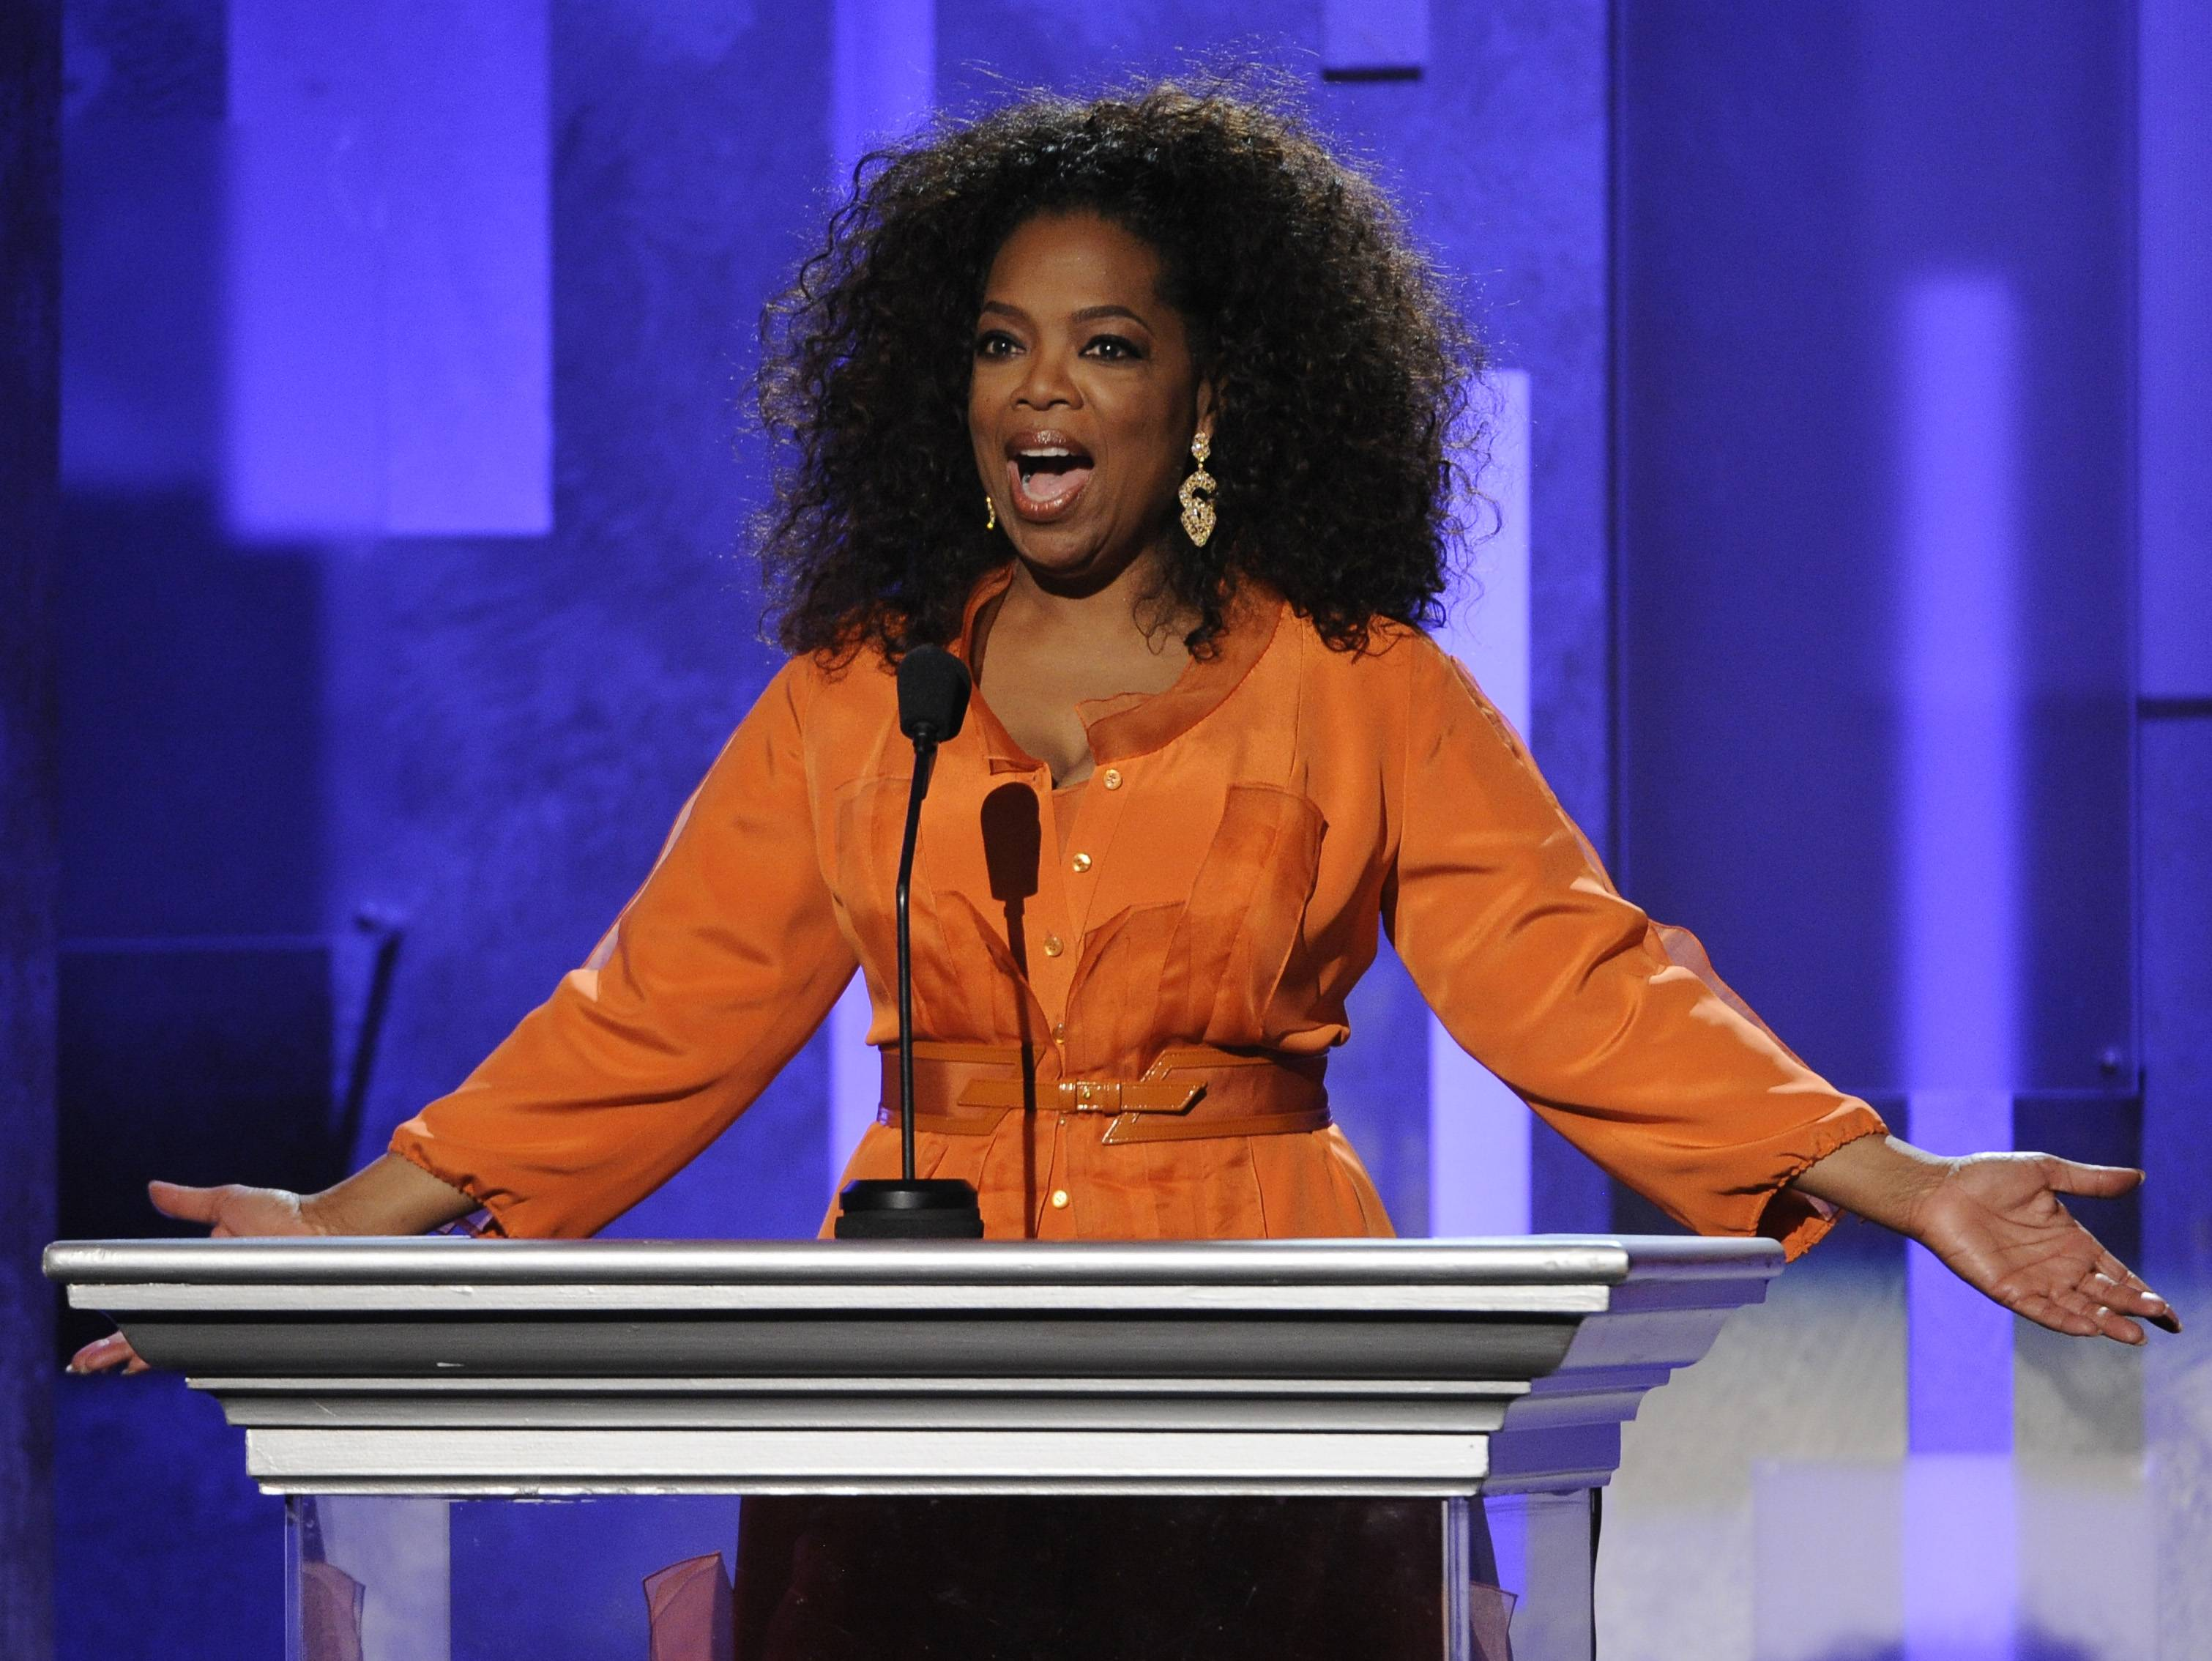 Oprah Winfrey speaks on stage at the 45th NAACP Image Awards at the Pasadena Civic Auditorium on Saturday in Pasadena, Calif.